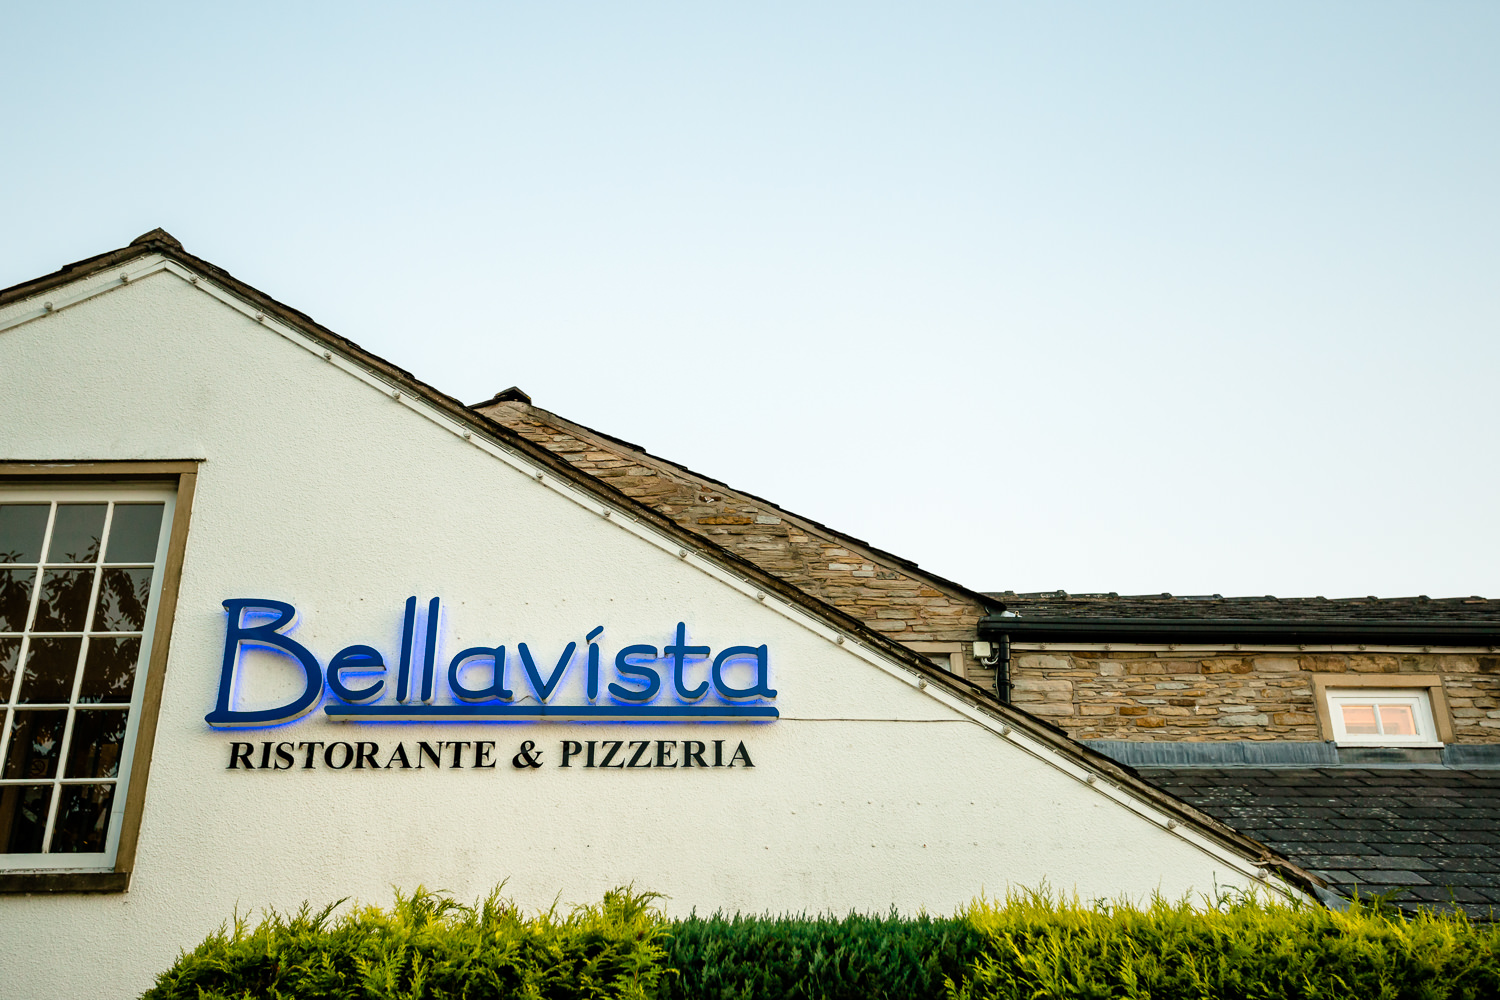 Bellavista restaurant, a wedding venue in Rochdale